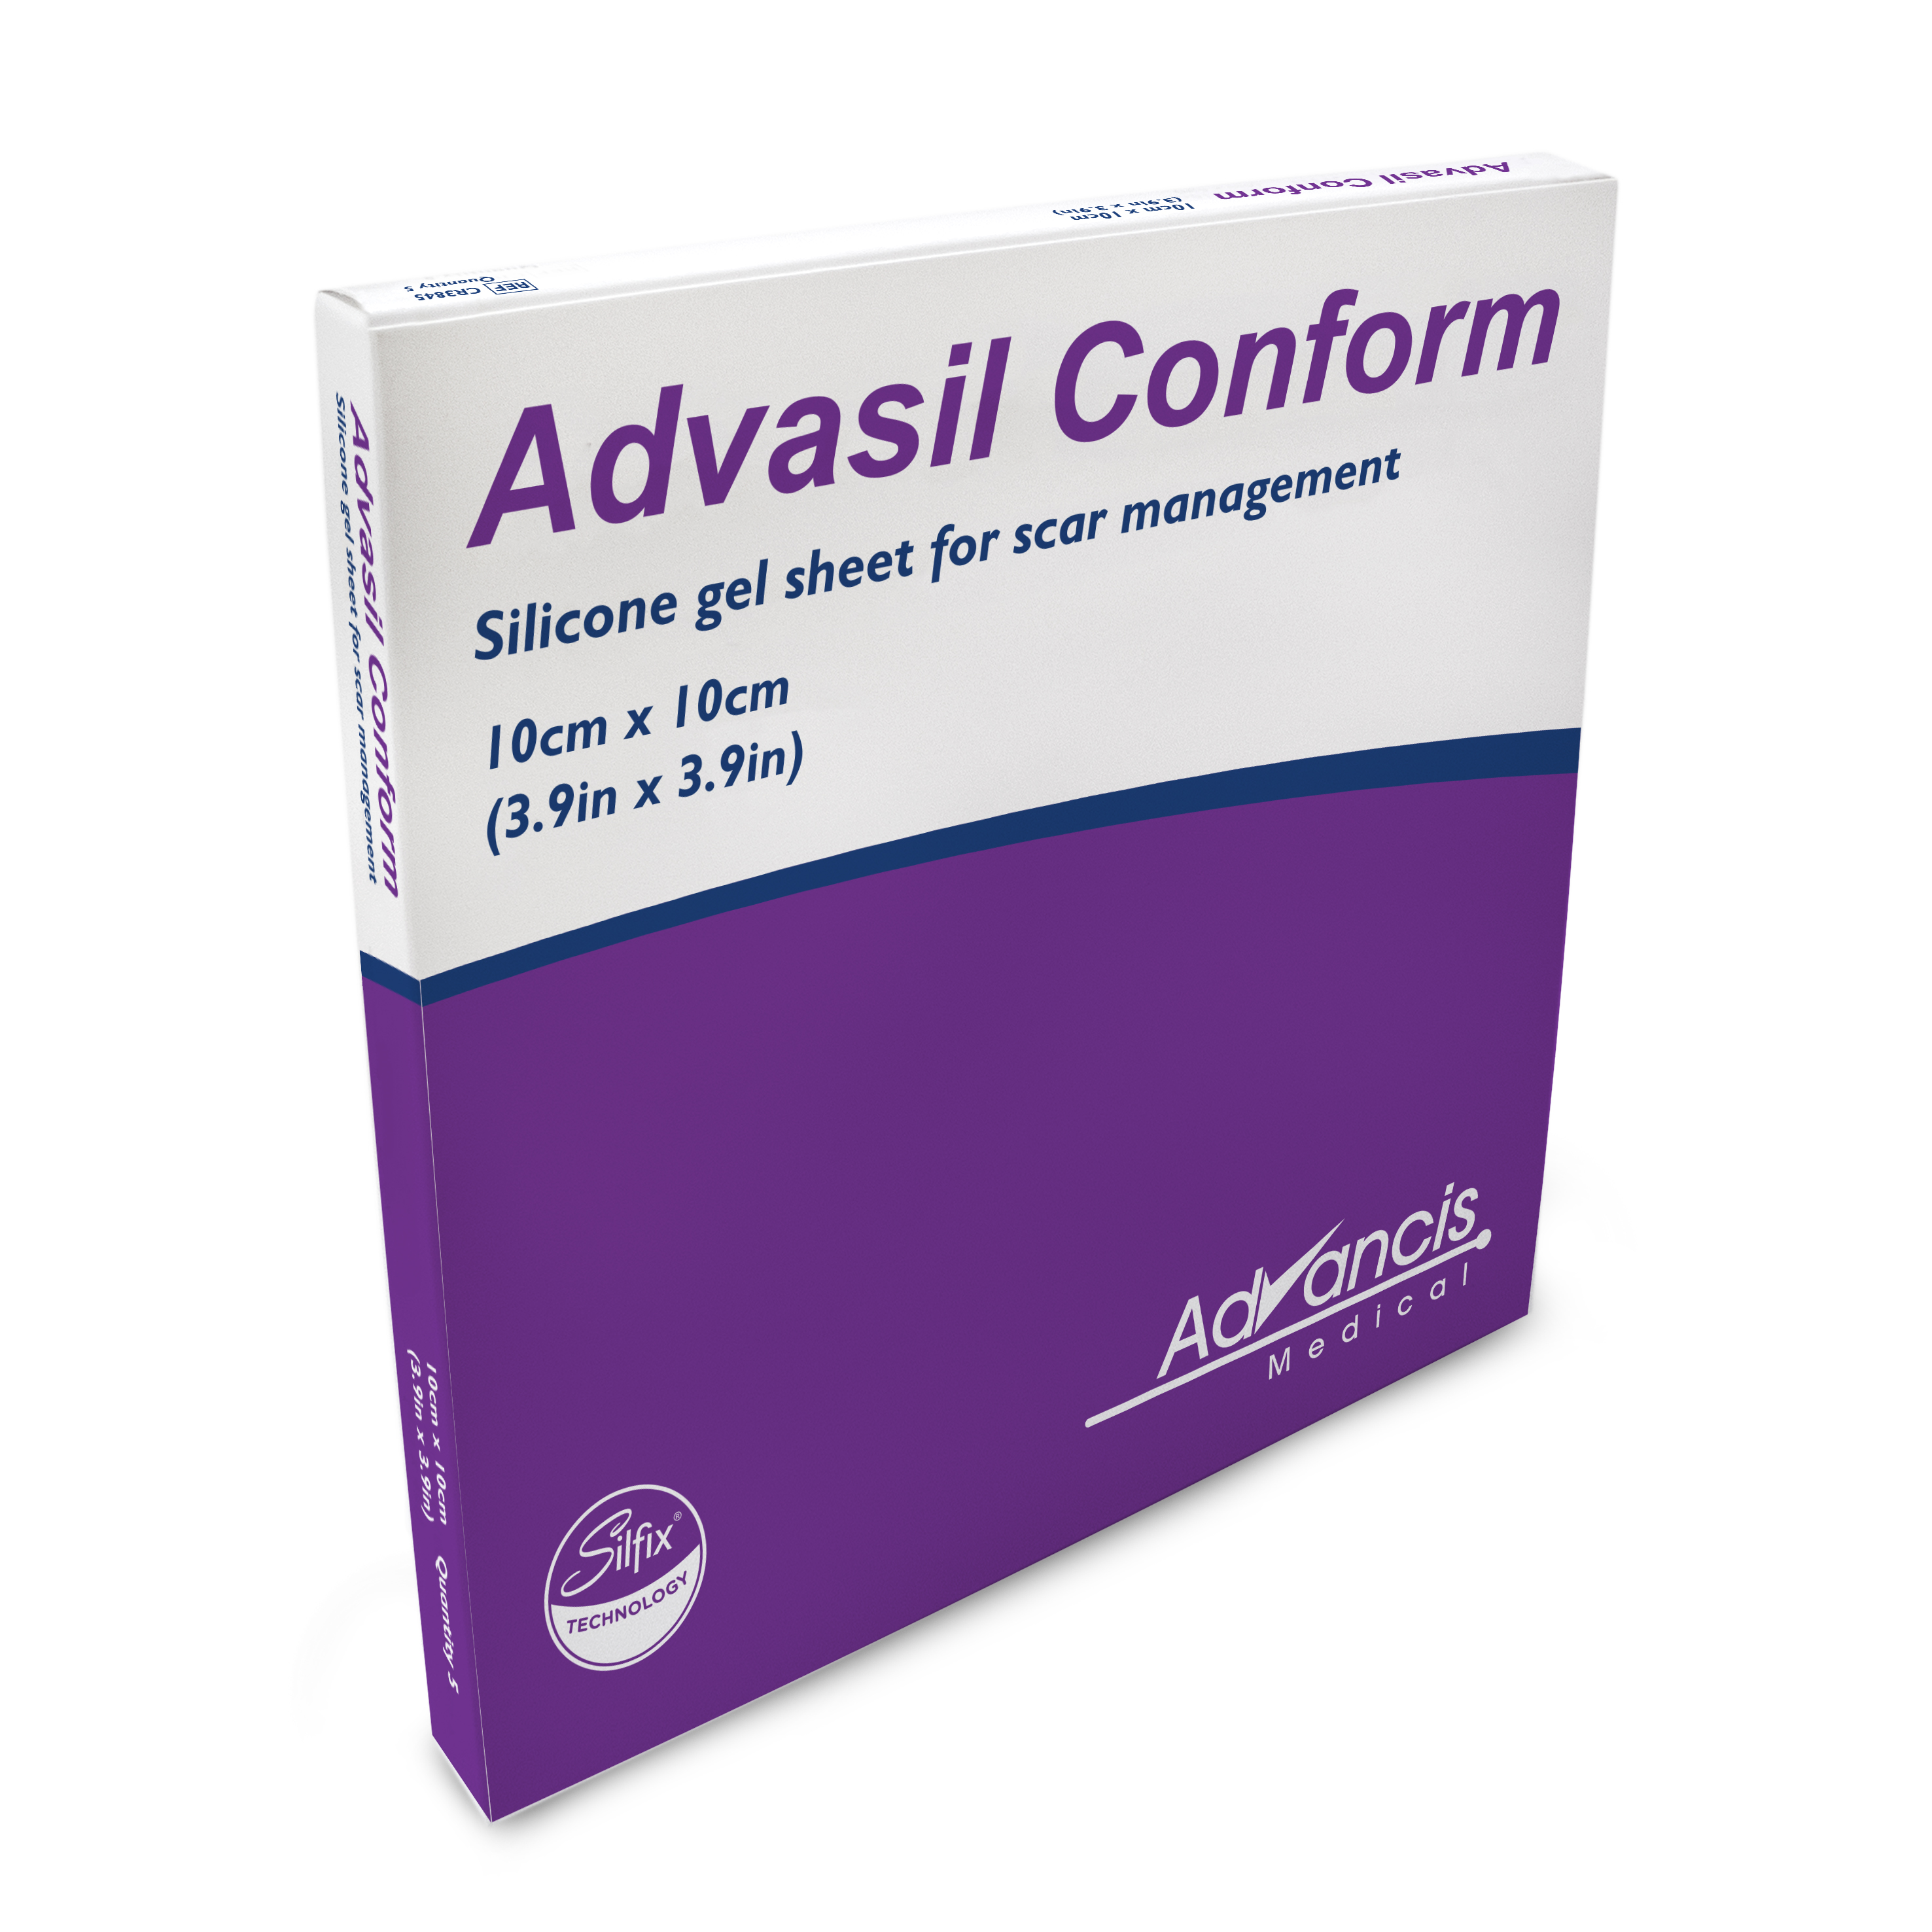 Advasil Conform